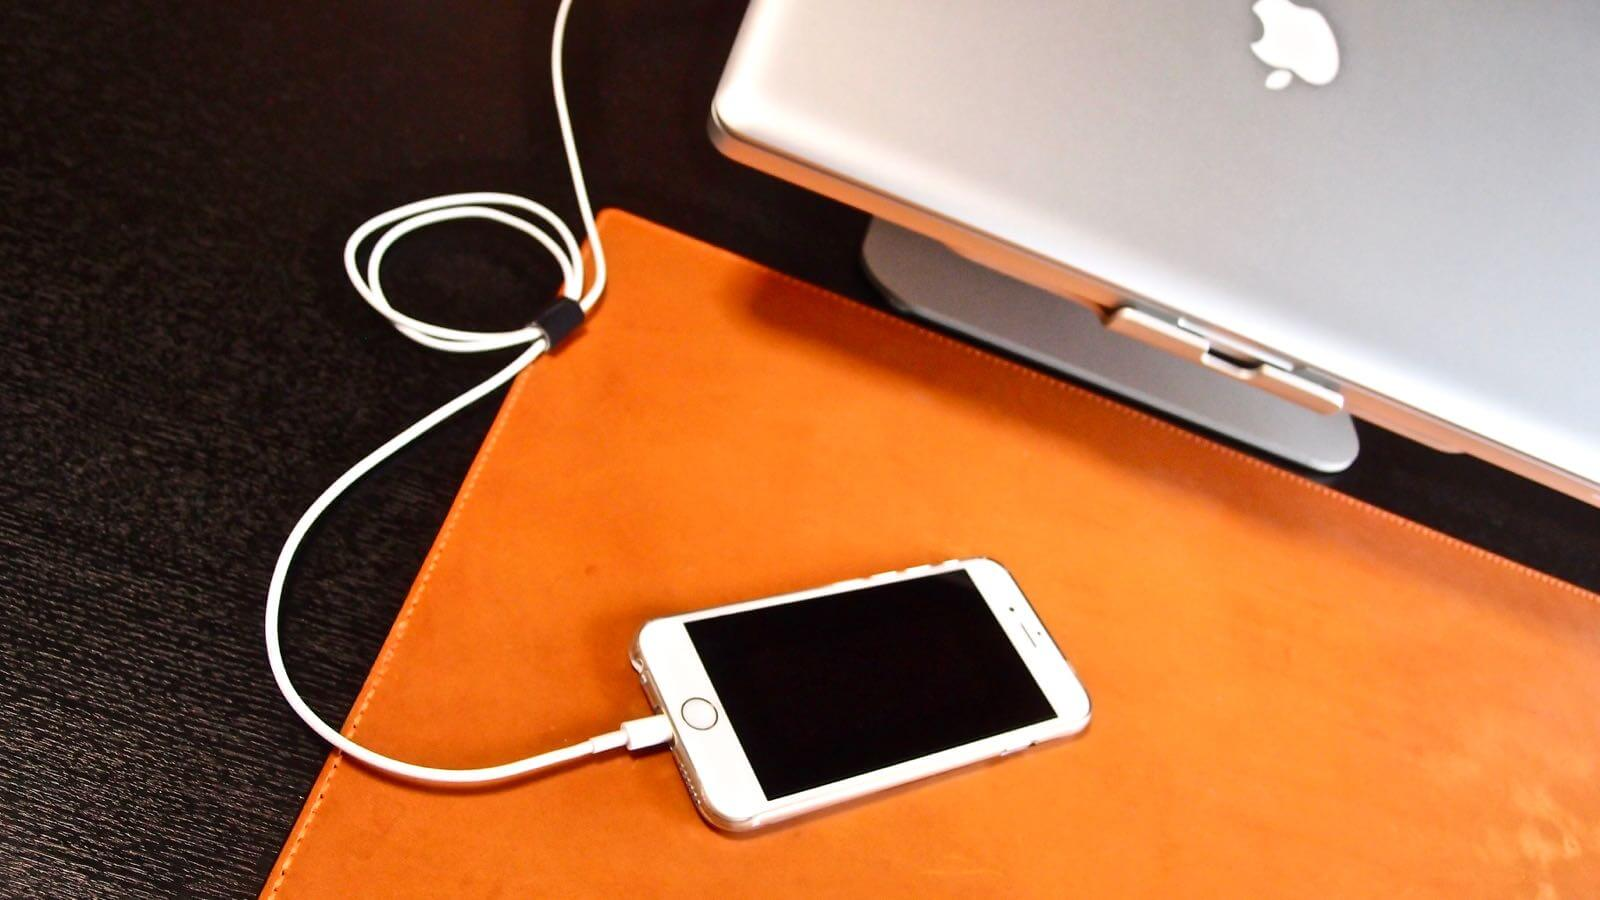 0166 Satechi iPhone Charging Stand Review  02